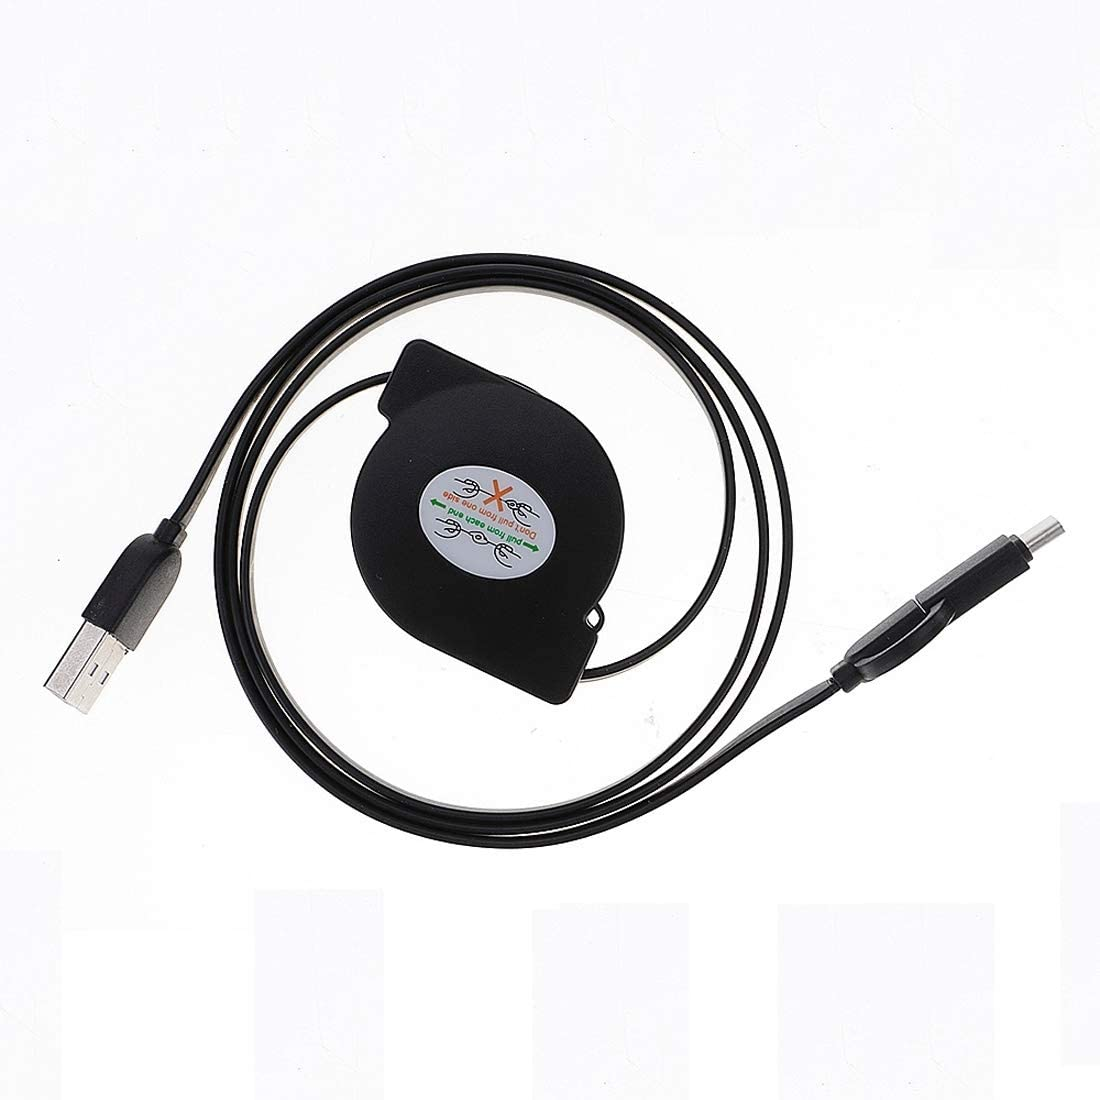 lekai Compact and Lightweight Cable 1m 2A Two in One Retractable Micro USB to Type-C Data Sync Charging Cable LG HTC and Other Smart Phones Rechargeable Devices B for Galaxy Huawei Xiaomi